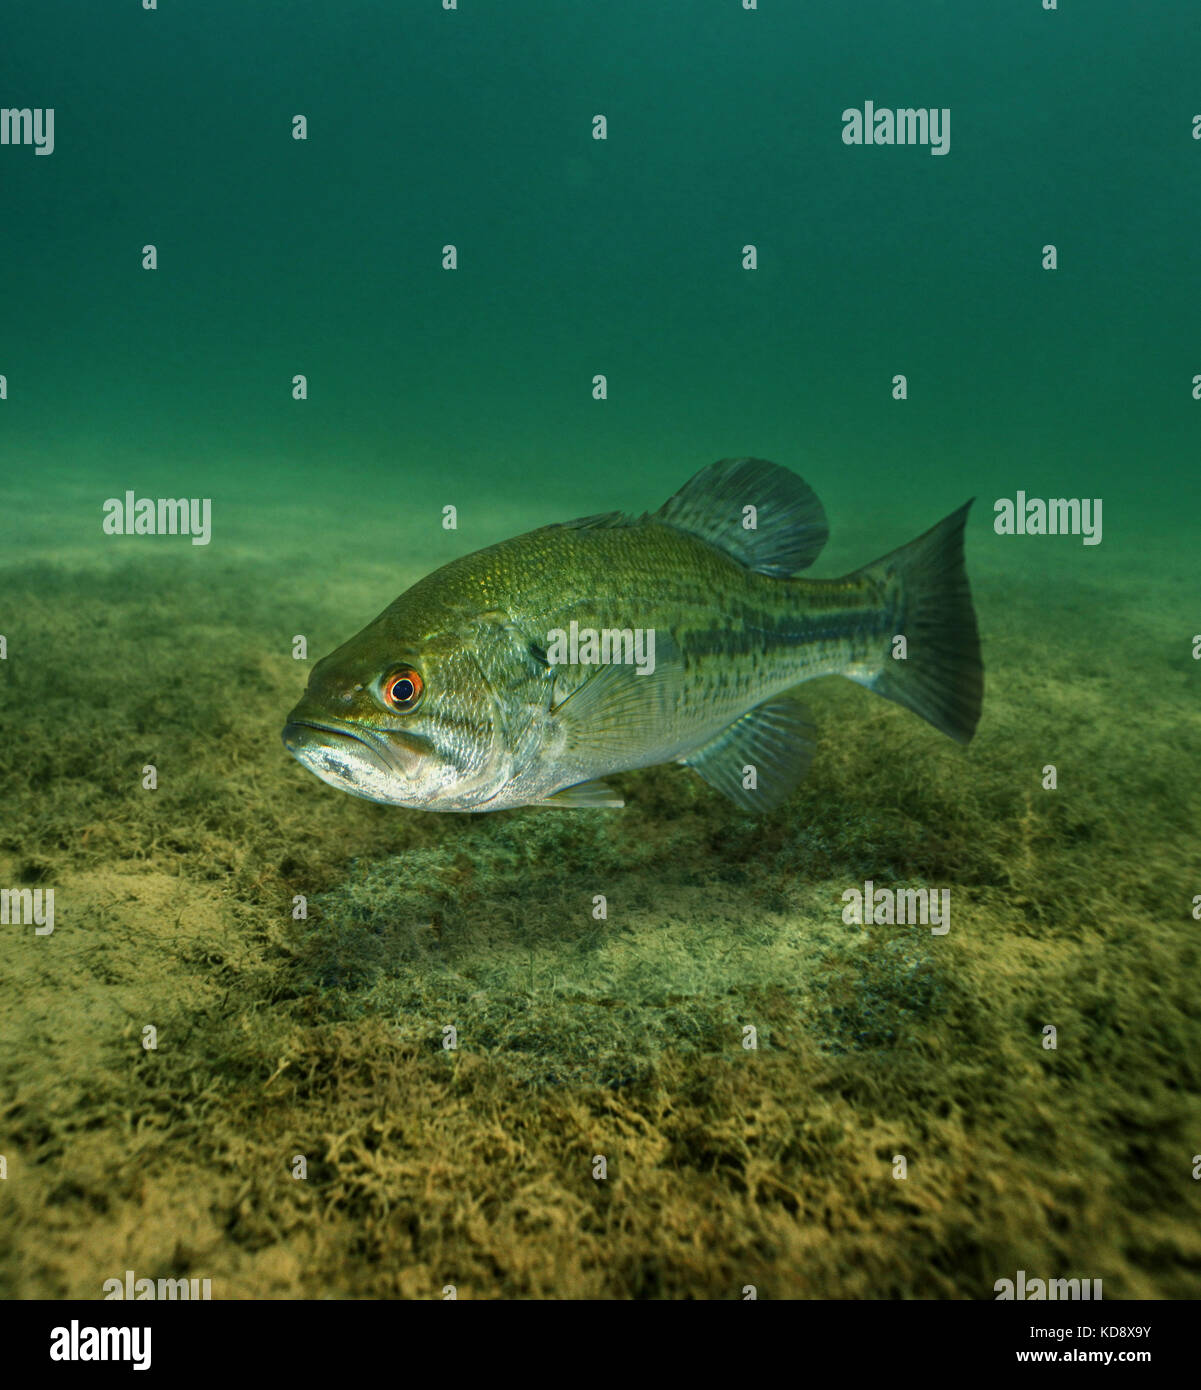 Largemouth bass, Micropterus salmoides. Male guarding the nest. The male will then guard the nest until the eggs - Stock Image